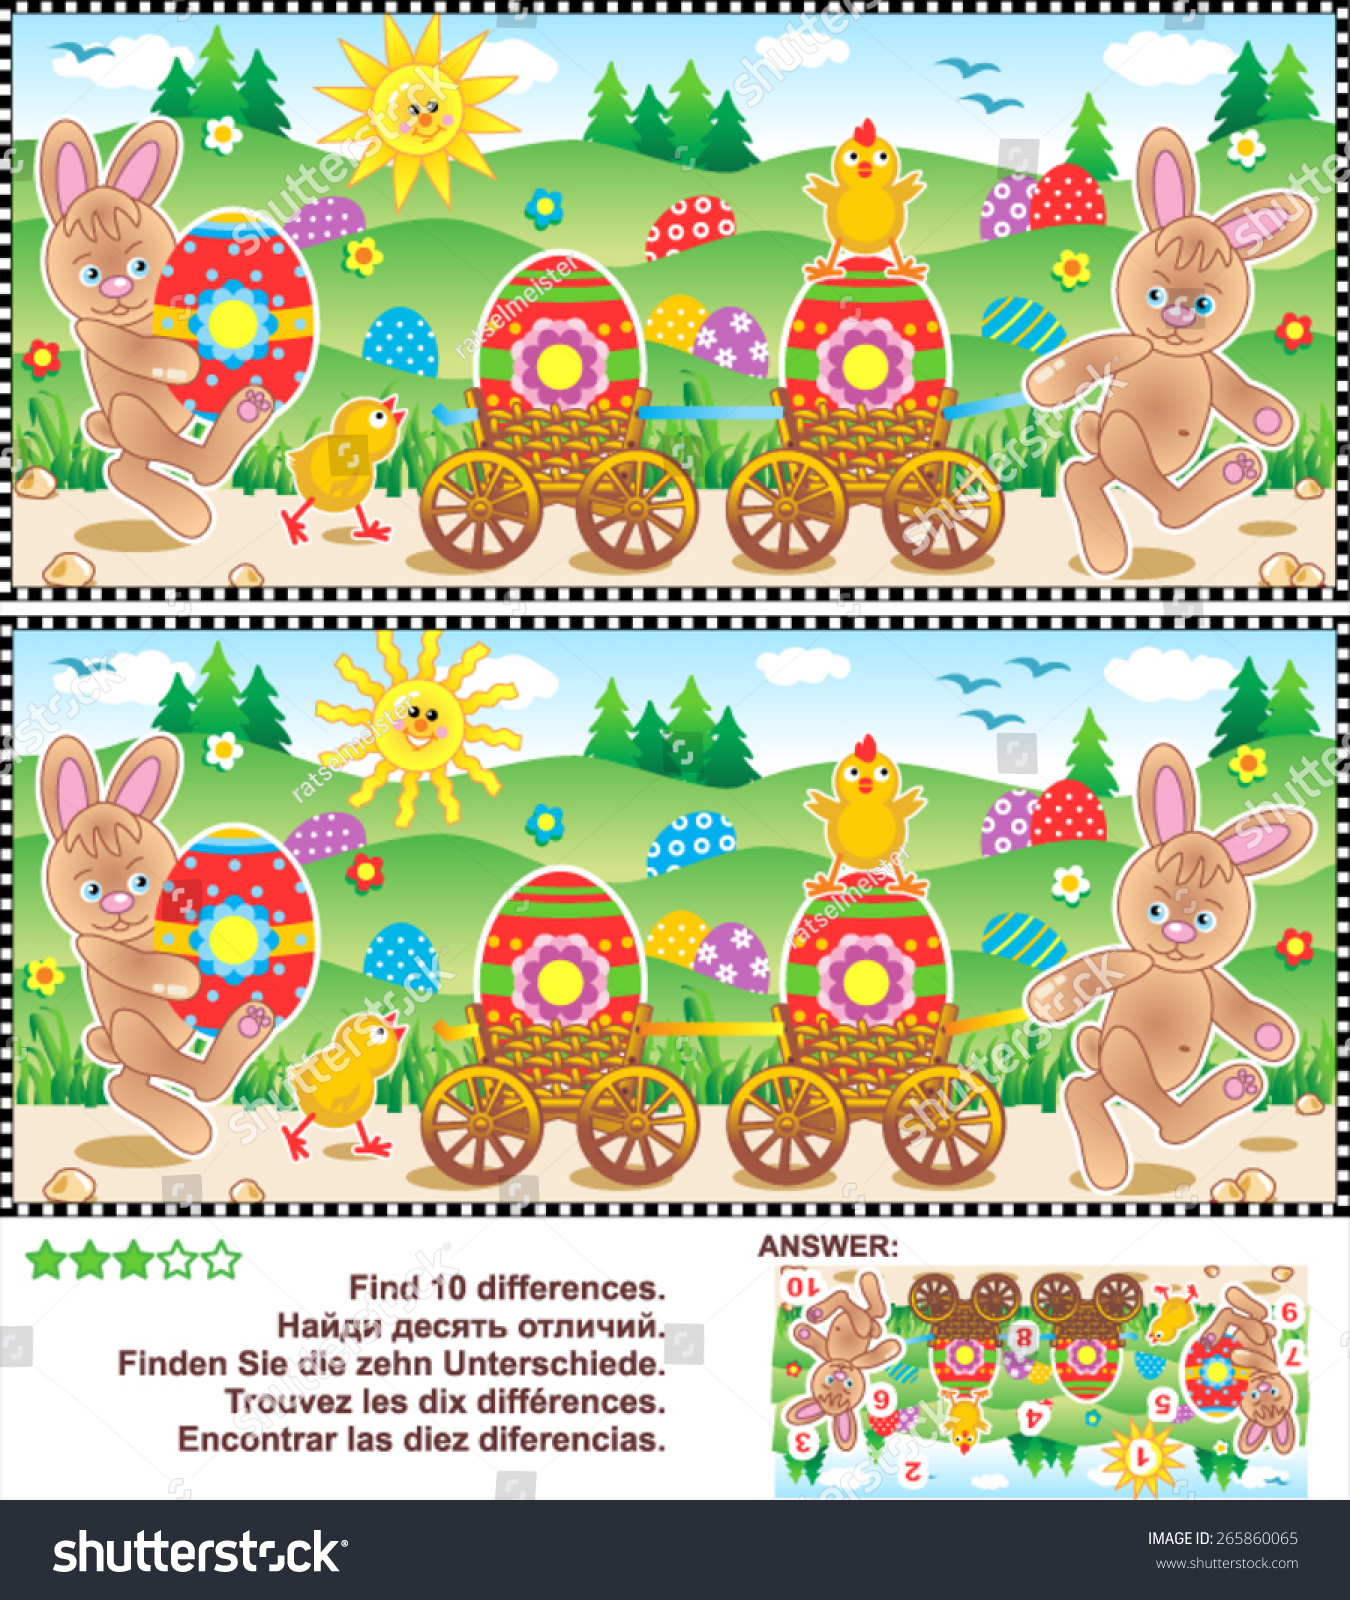 Easter Egg Hunt Themed Visual Puzzle Stock Vector